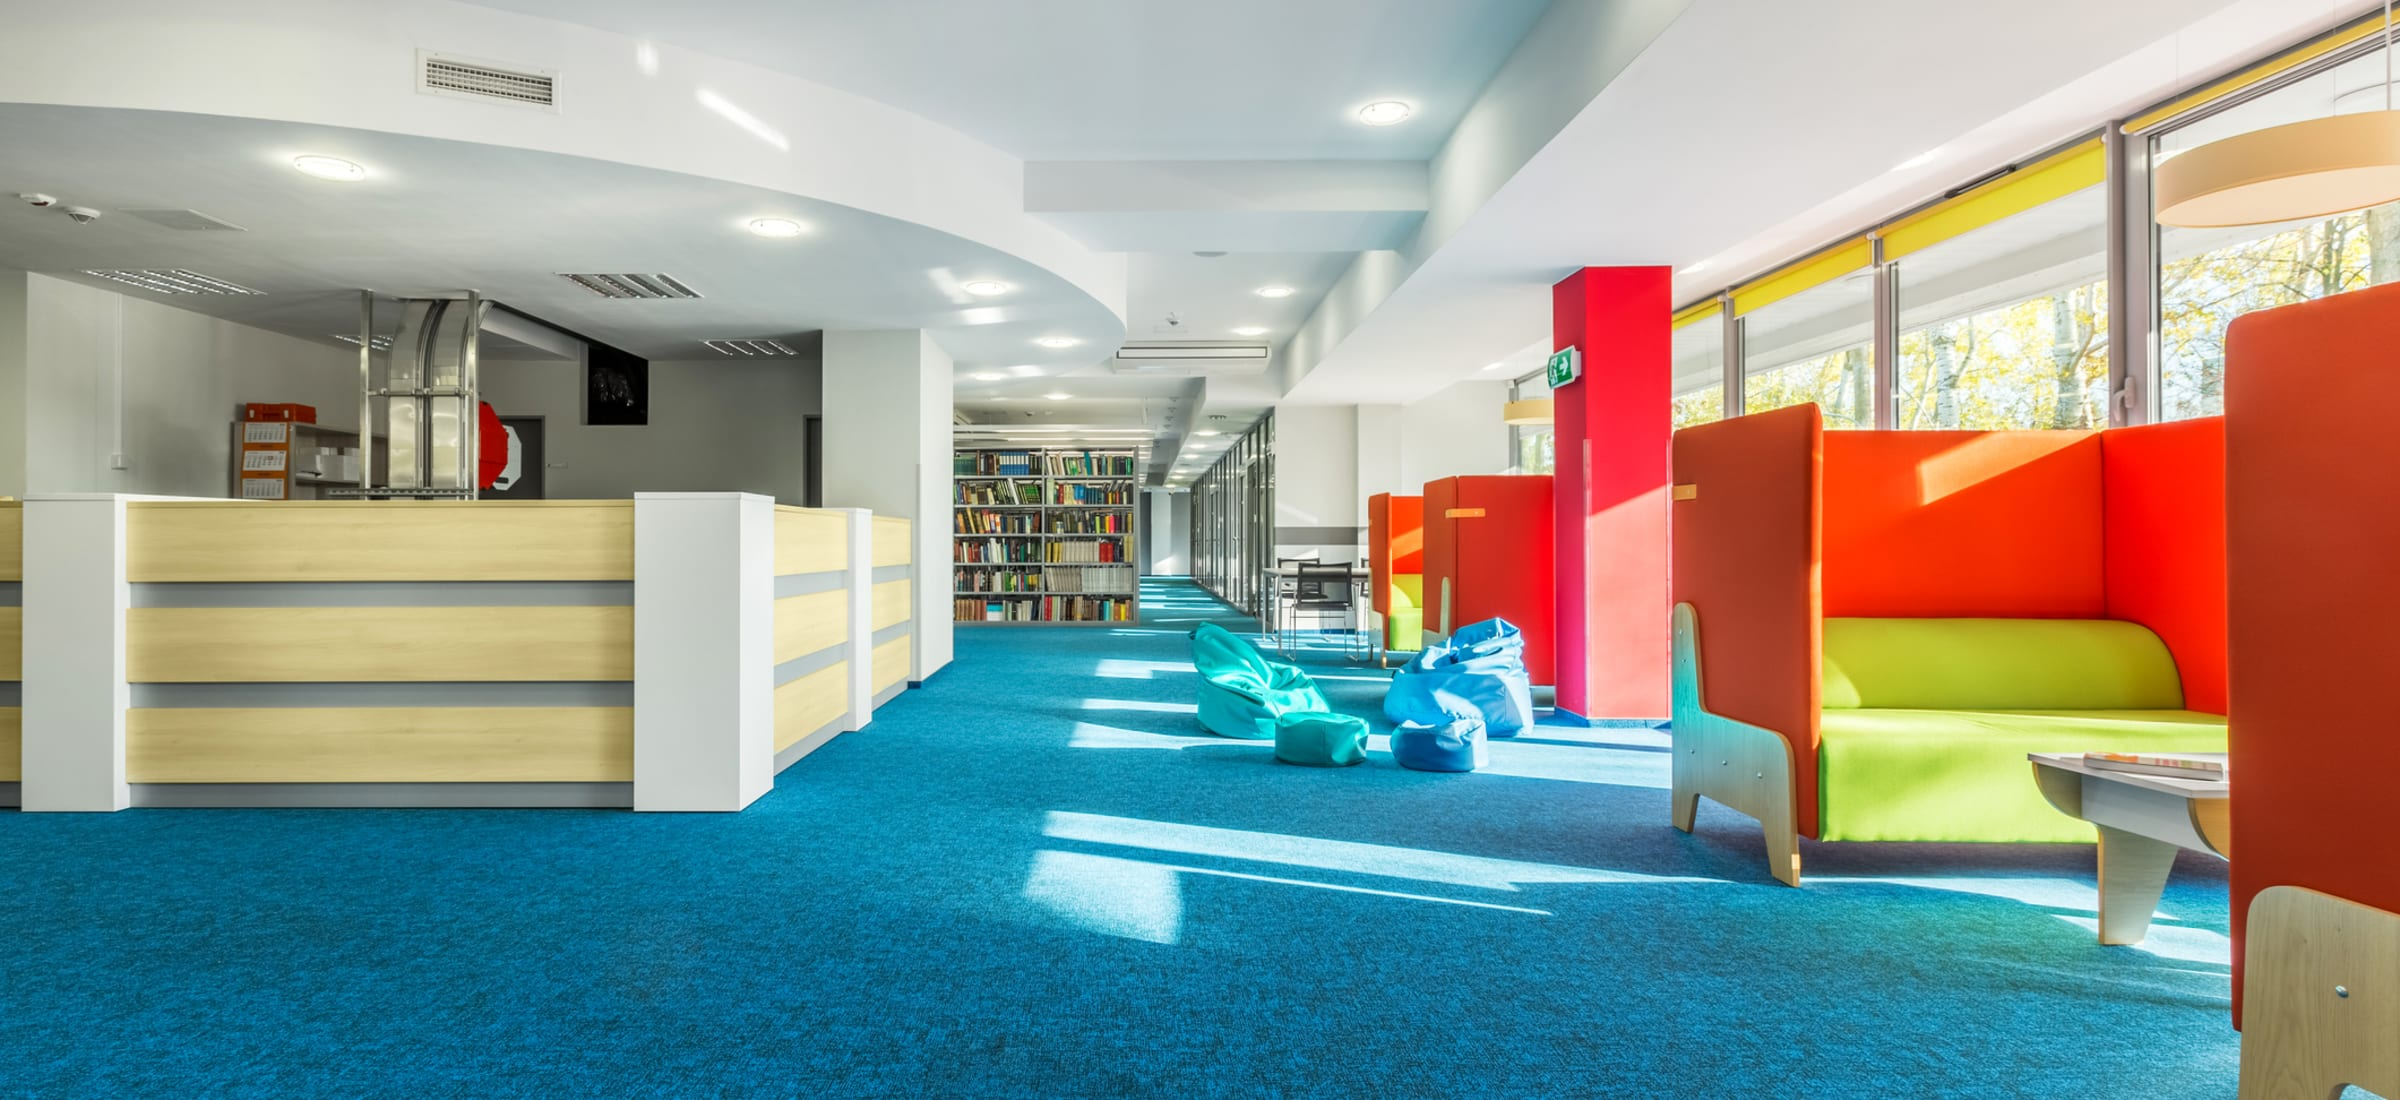 Colorful library with seating